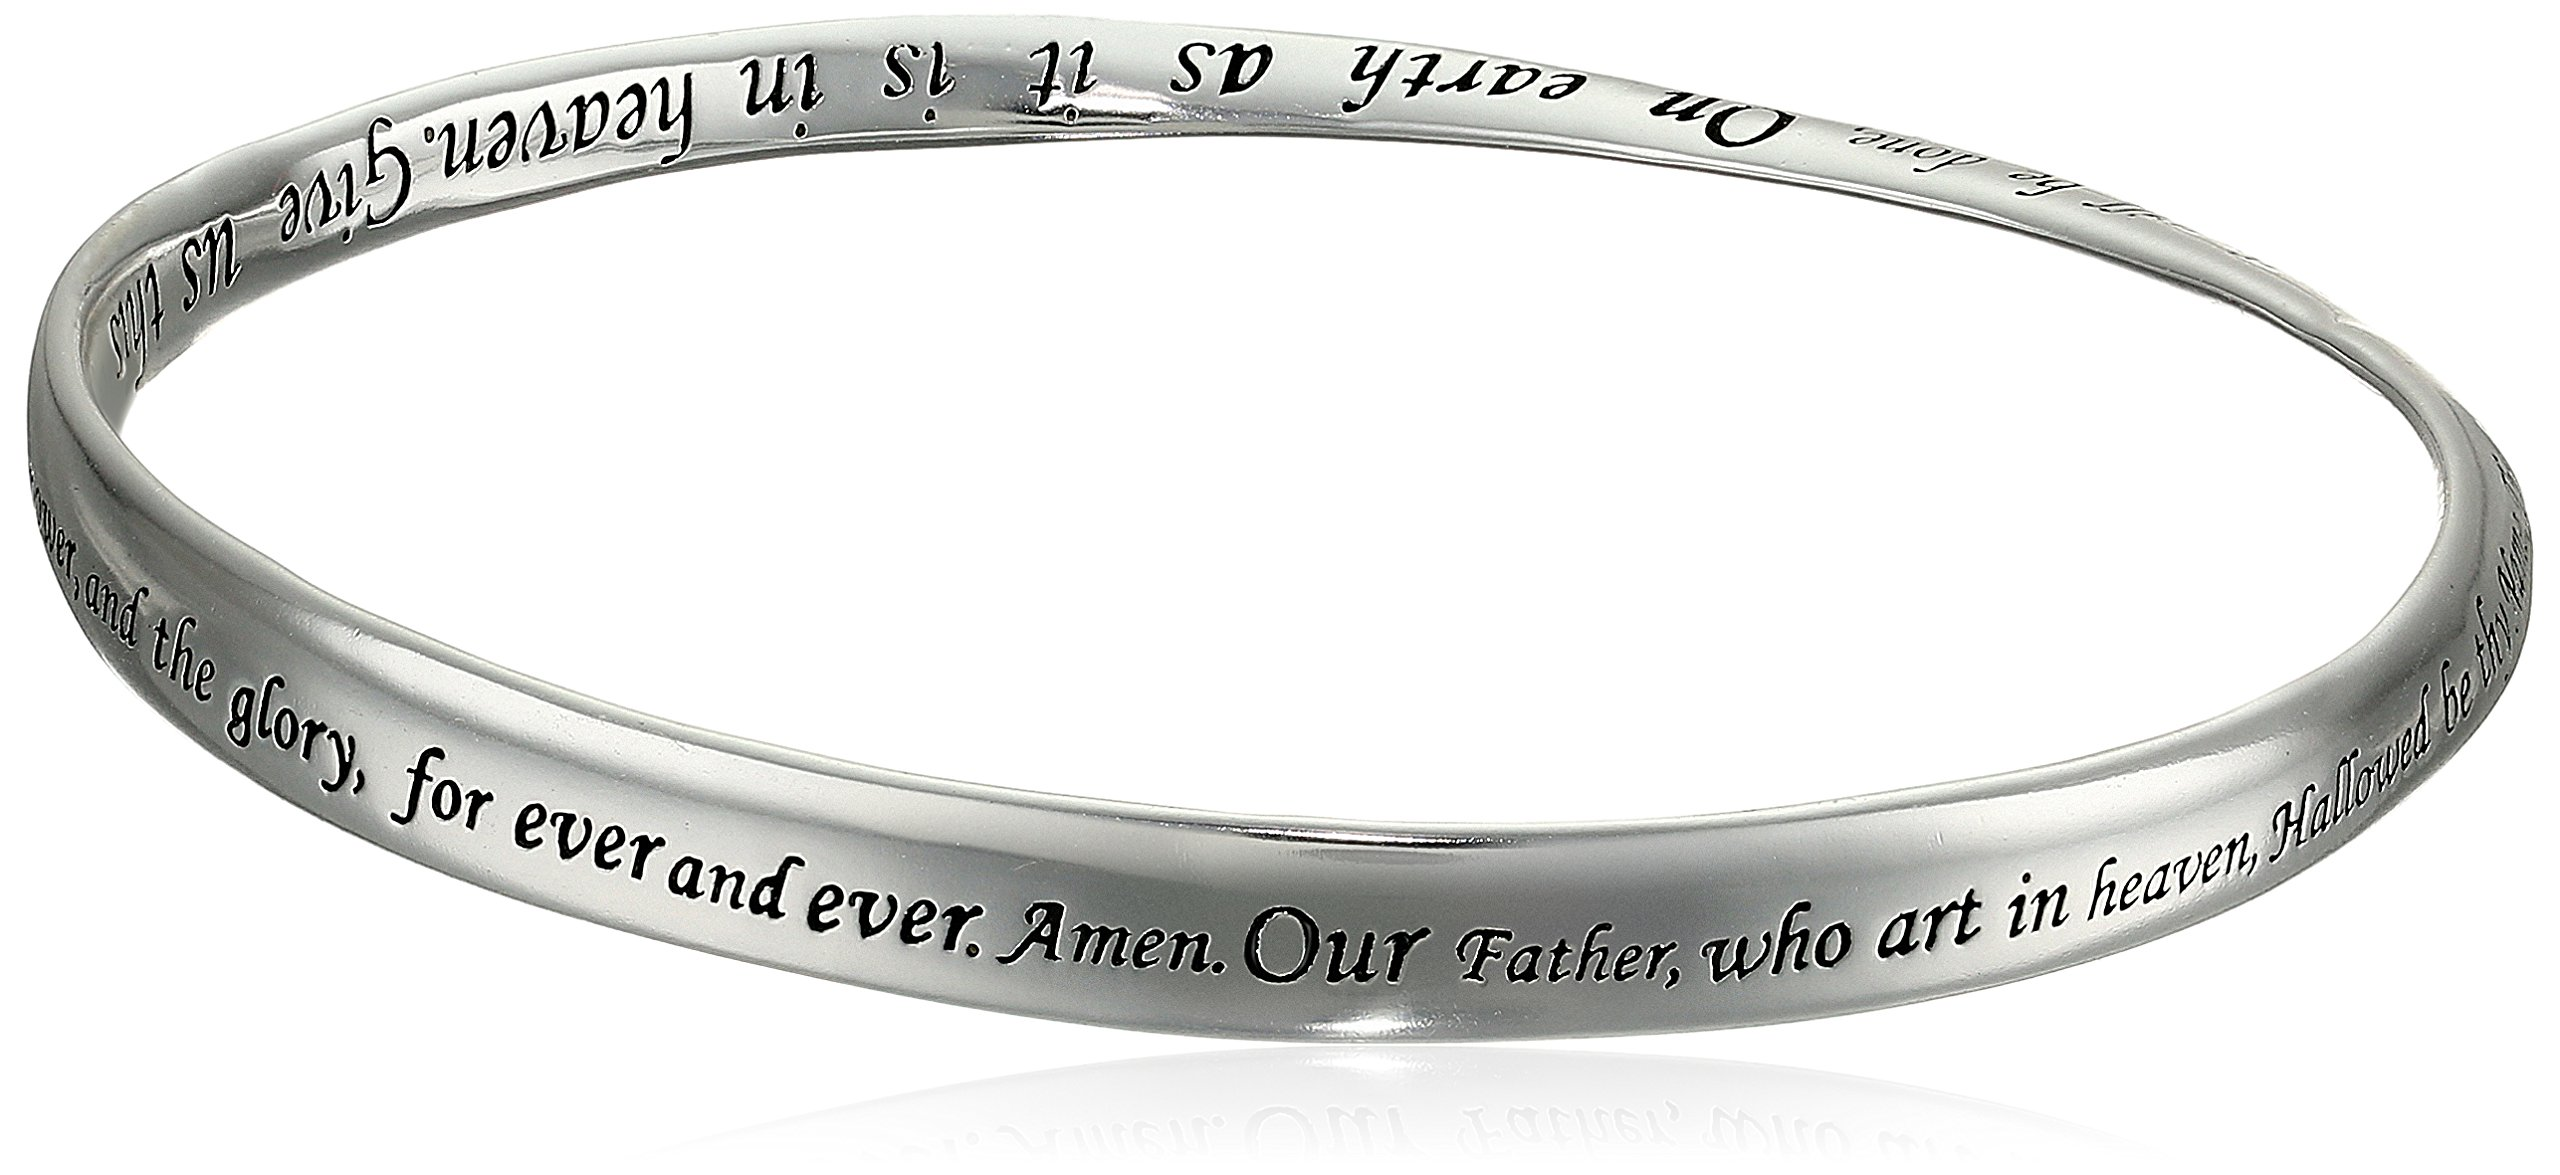 Sterling Silver ''Lord's Prayer'' Bangle Bracelet, 8.75'' by Amazon Collection (Image #2)